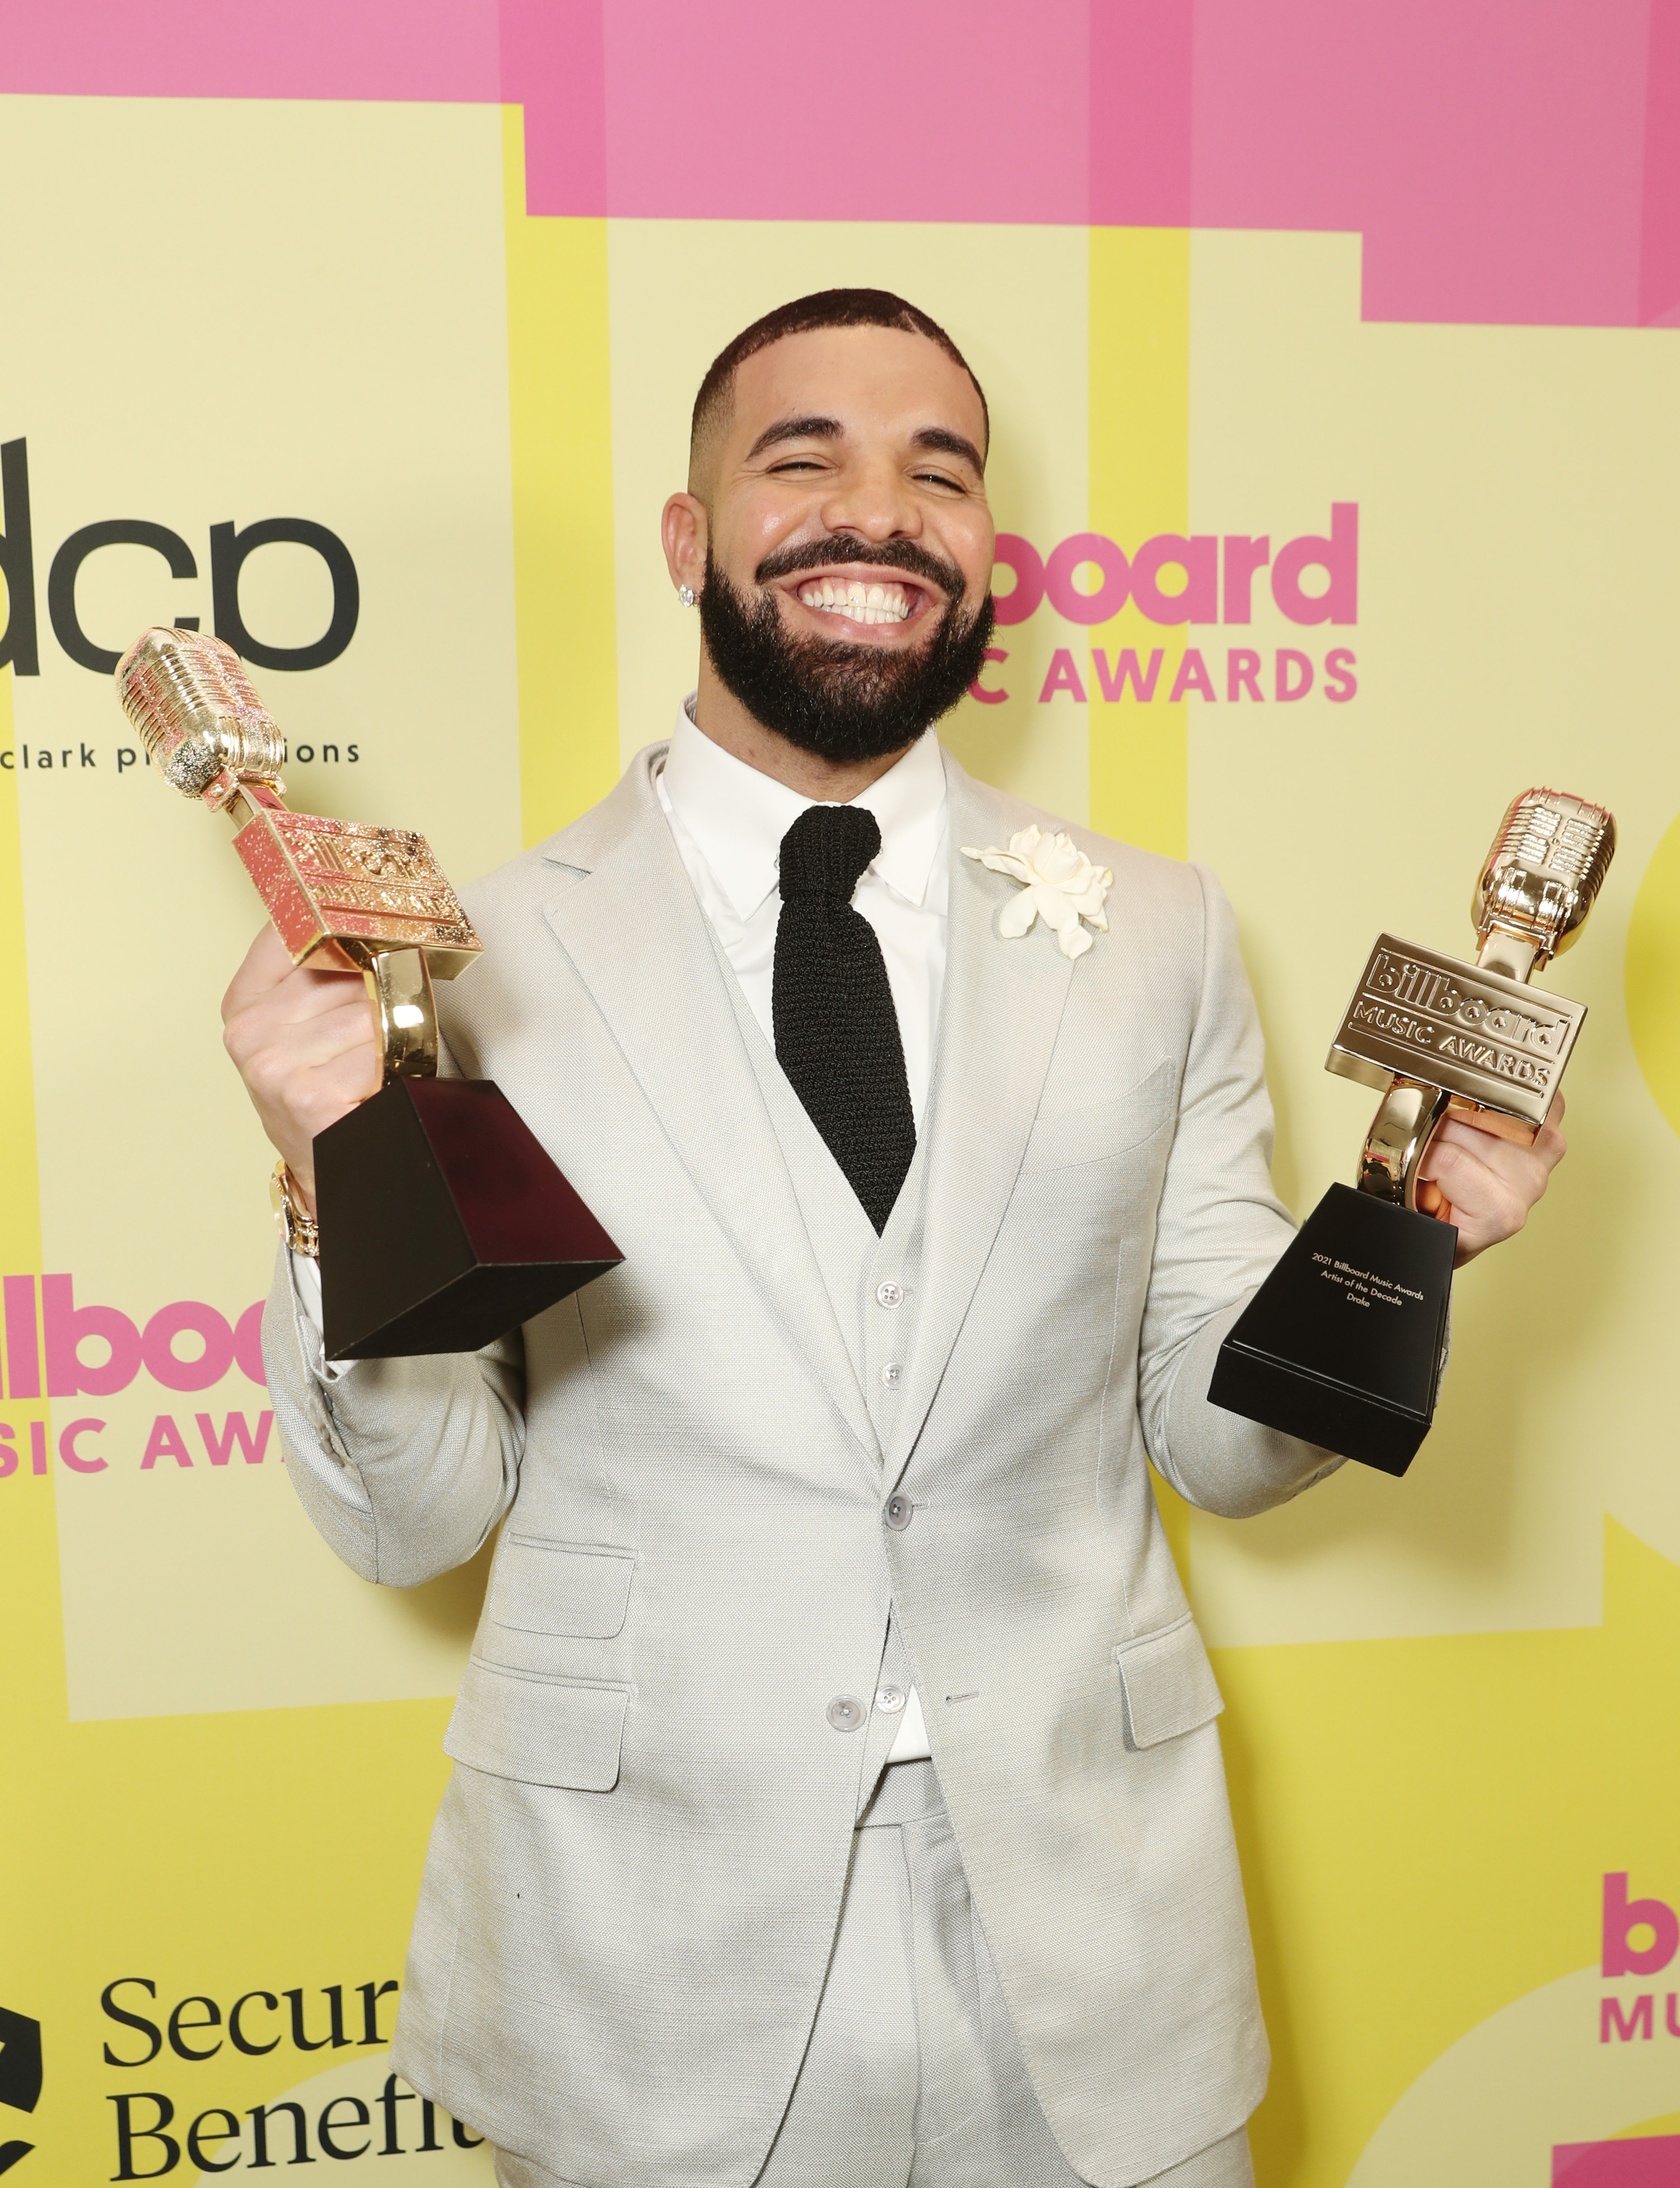 Drake smiling on the red carpet, holding up two Billboard Music Awards